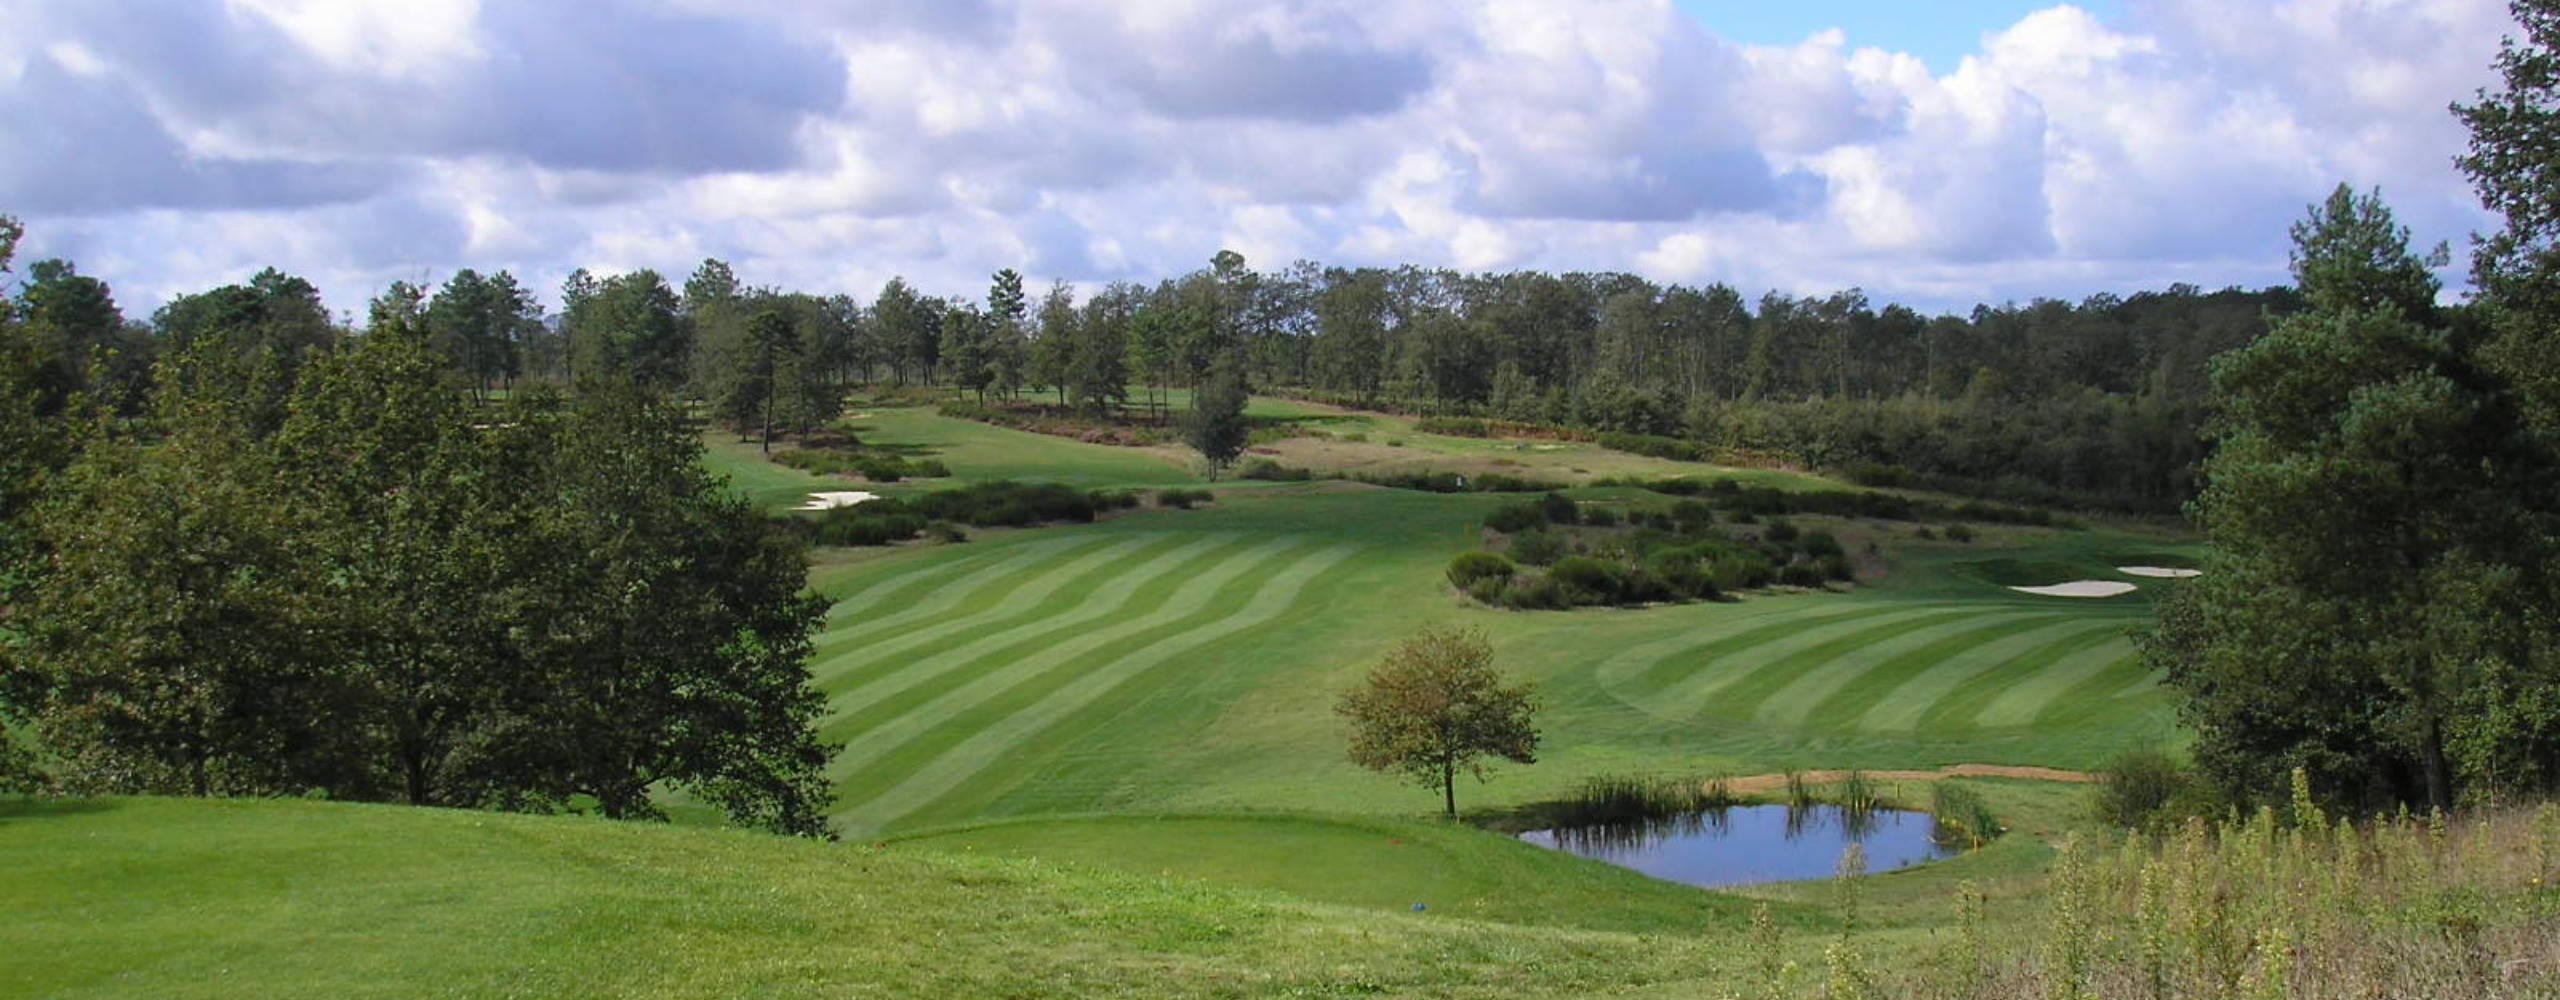 marterie-accueil Official website of the Departmental Golf Committee of Dordogne